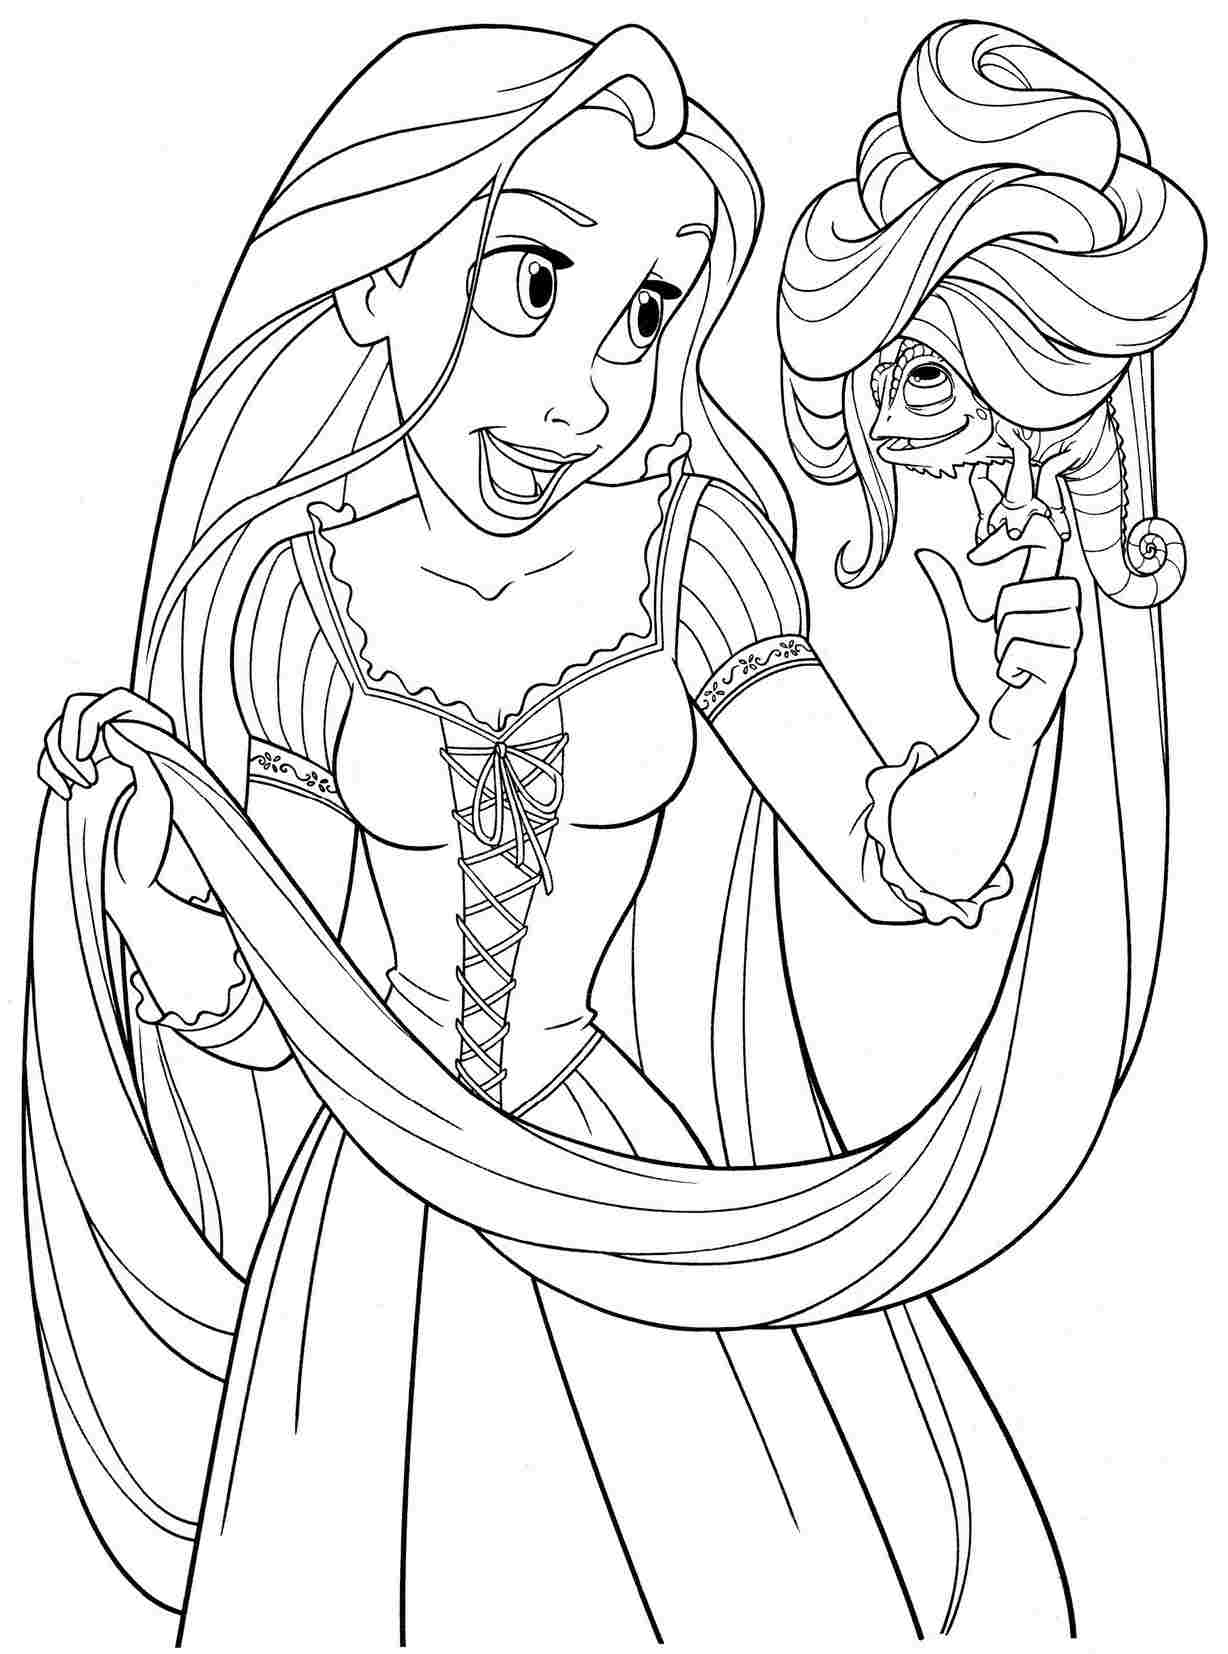 free rapunzel coloring pages nice rapunzel and flynn ready coloring page disney rapunzel pages coloring free